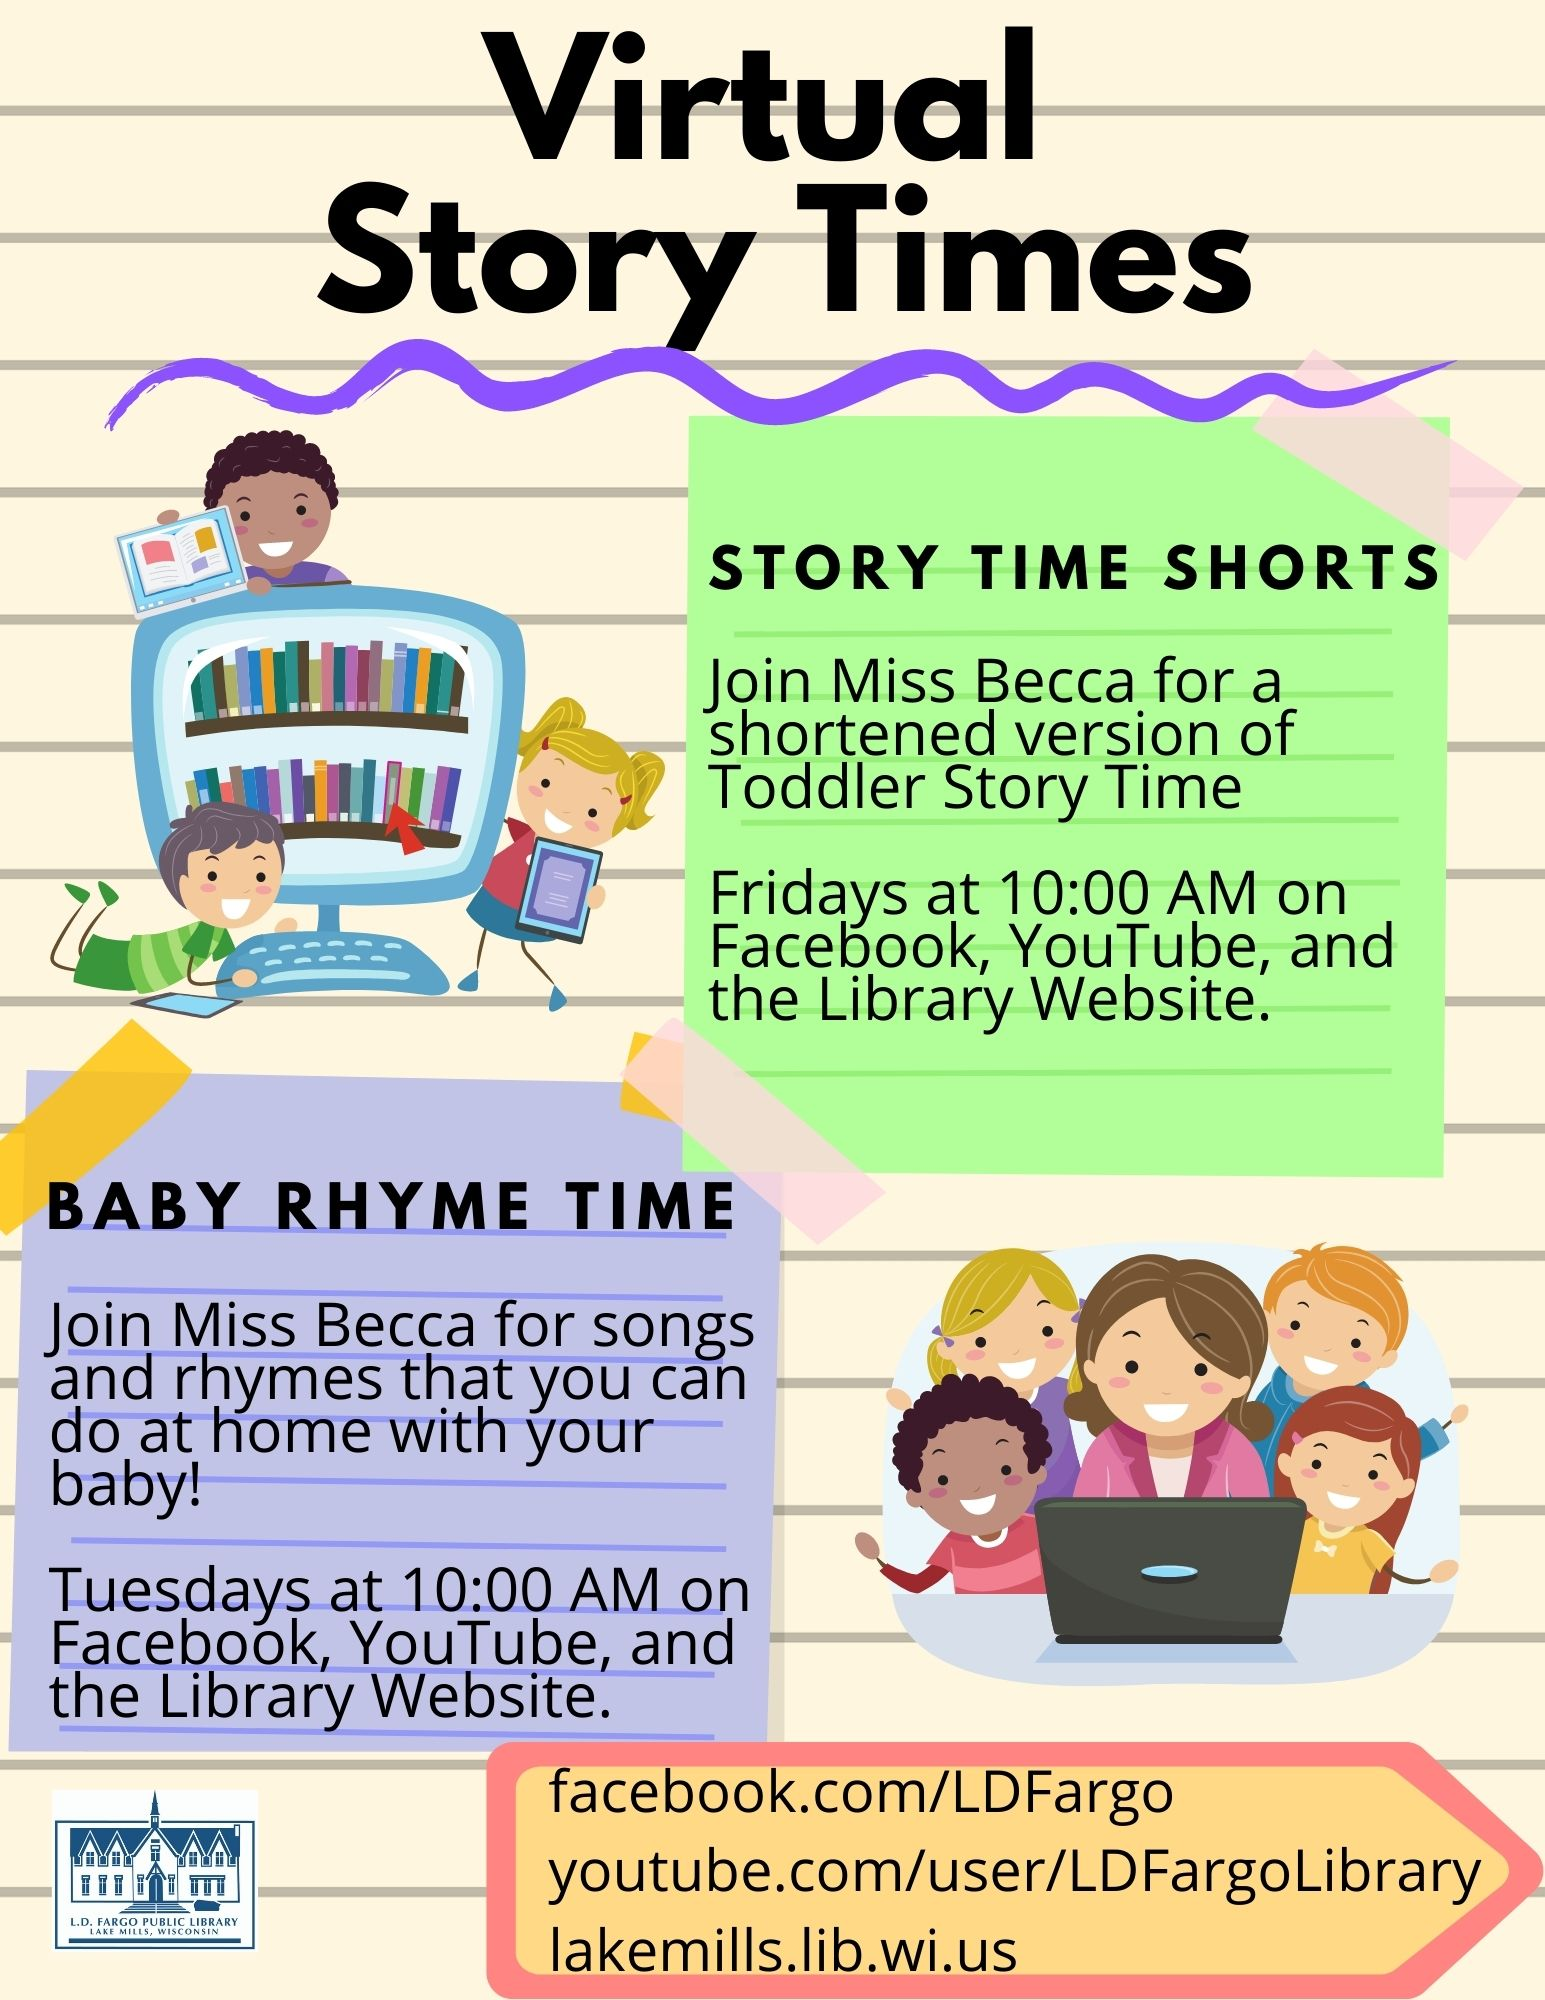 Virtual Story Times. Baby Rhyme Time: Miss Becca Presents songs and rhymes that you can do at home with your baby.  Tuesdays at 10:00 AM.  Story Time Shorts: Join Miss Becca for a shortened version of Toddler Story TIme.  Fridays at 10:00 AM.  On Facebook, YouTube, and library website.